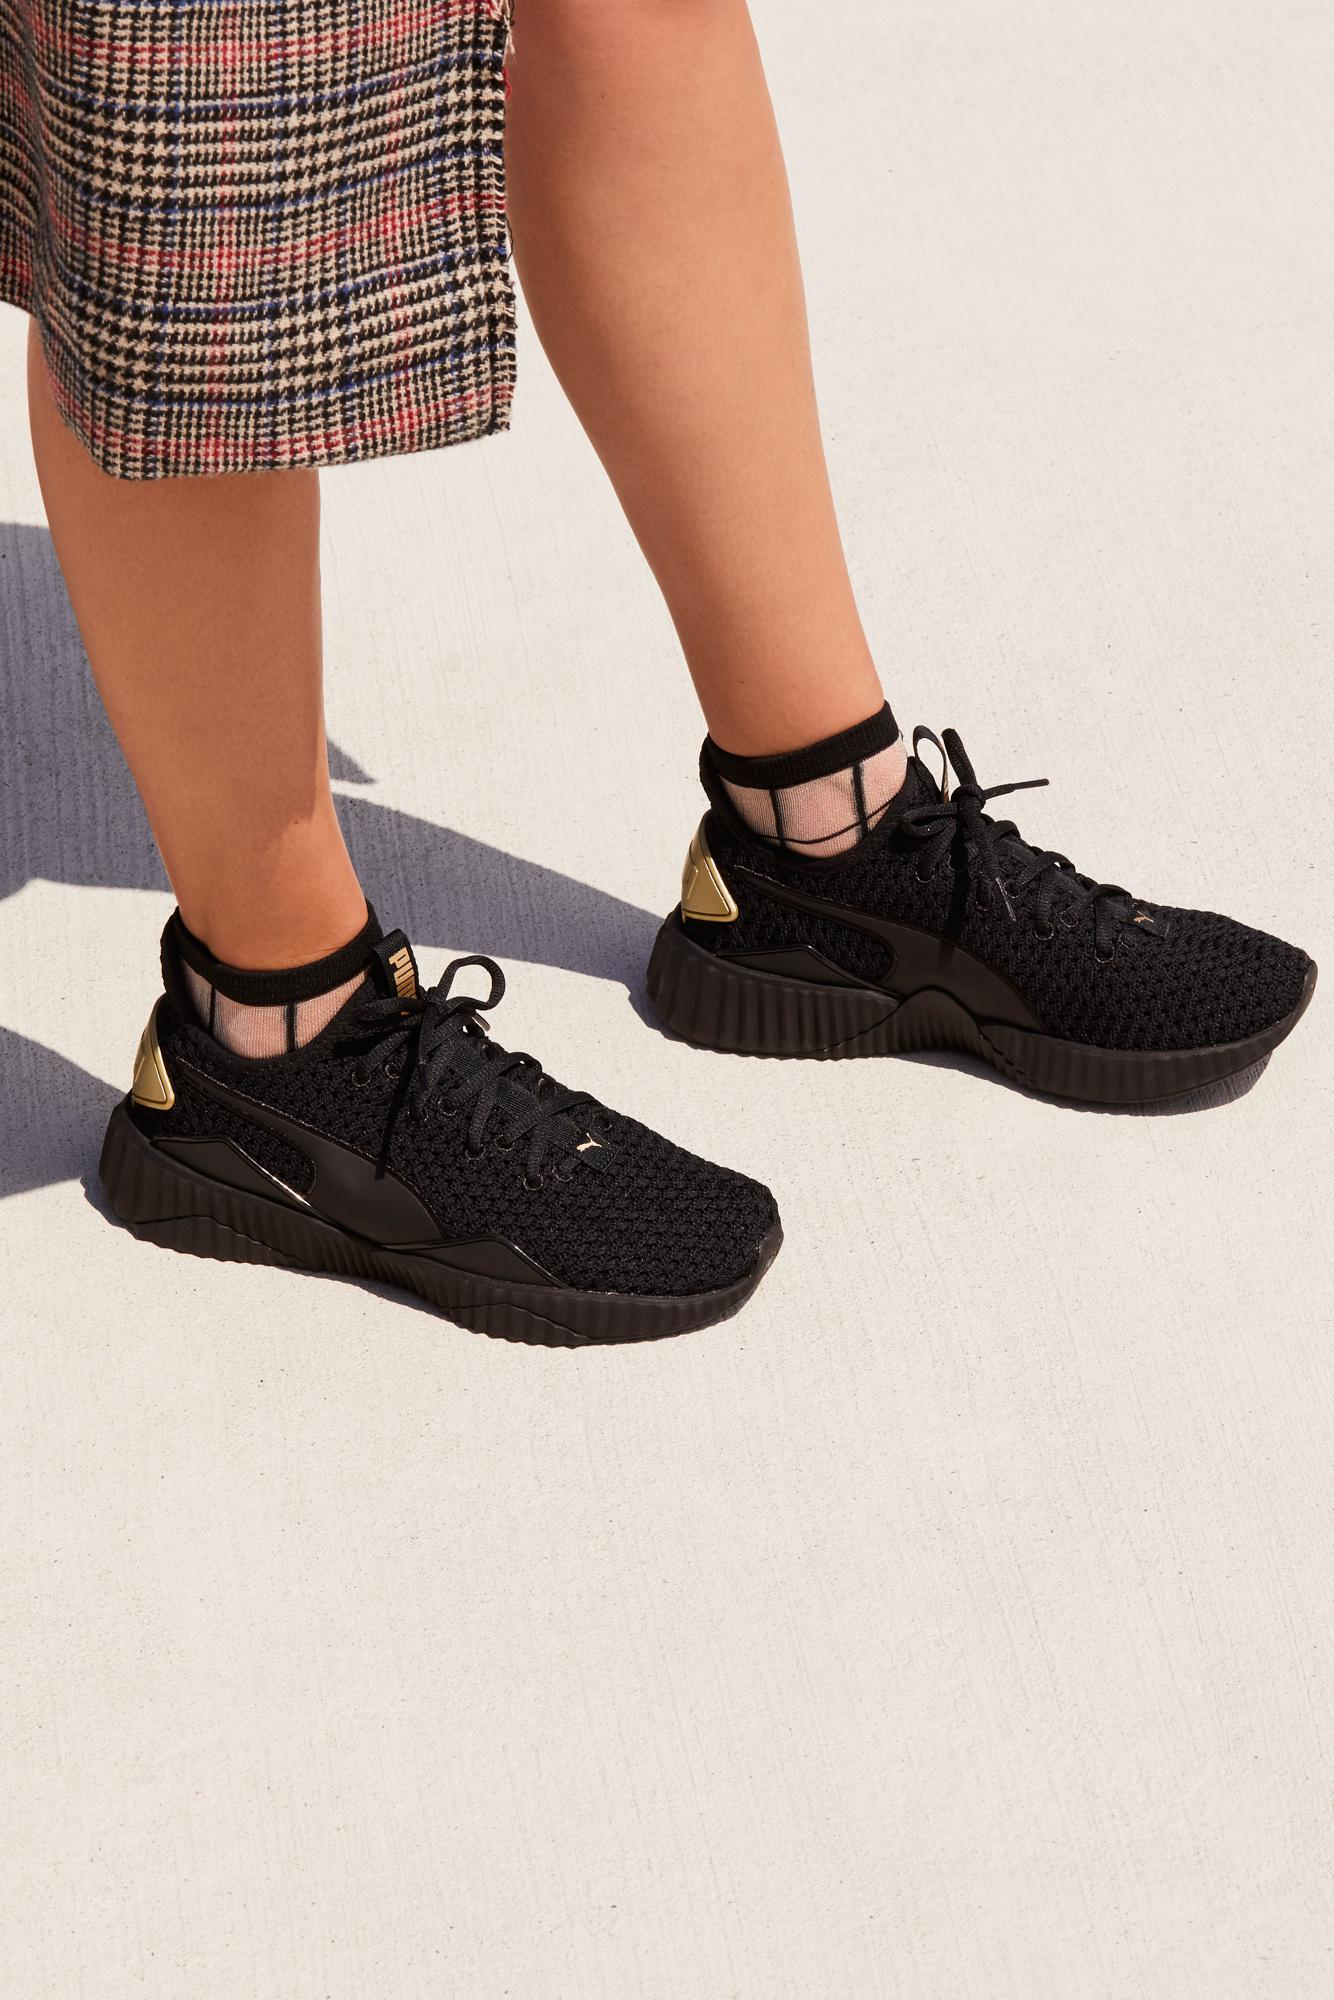 099c51f3452e Free People Defy Ns Trainer By Puma in Black - Lyst